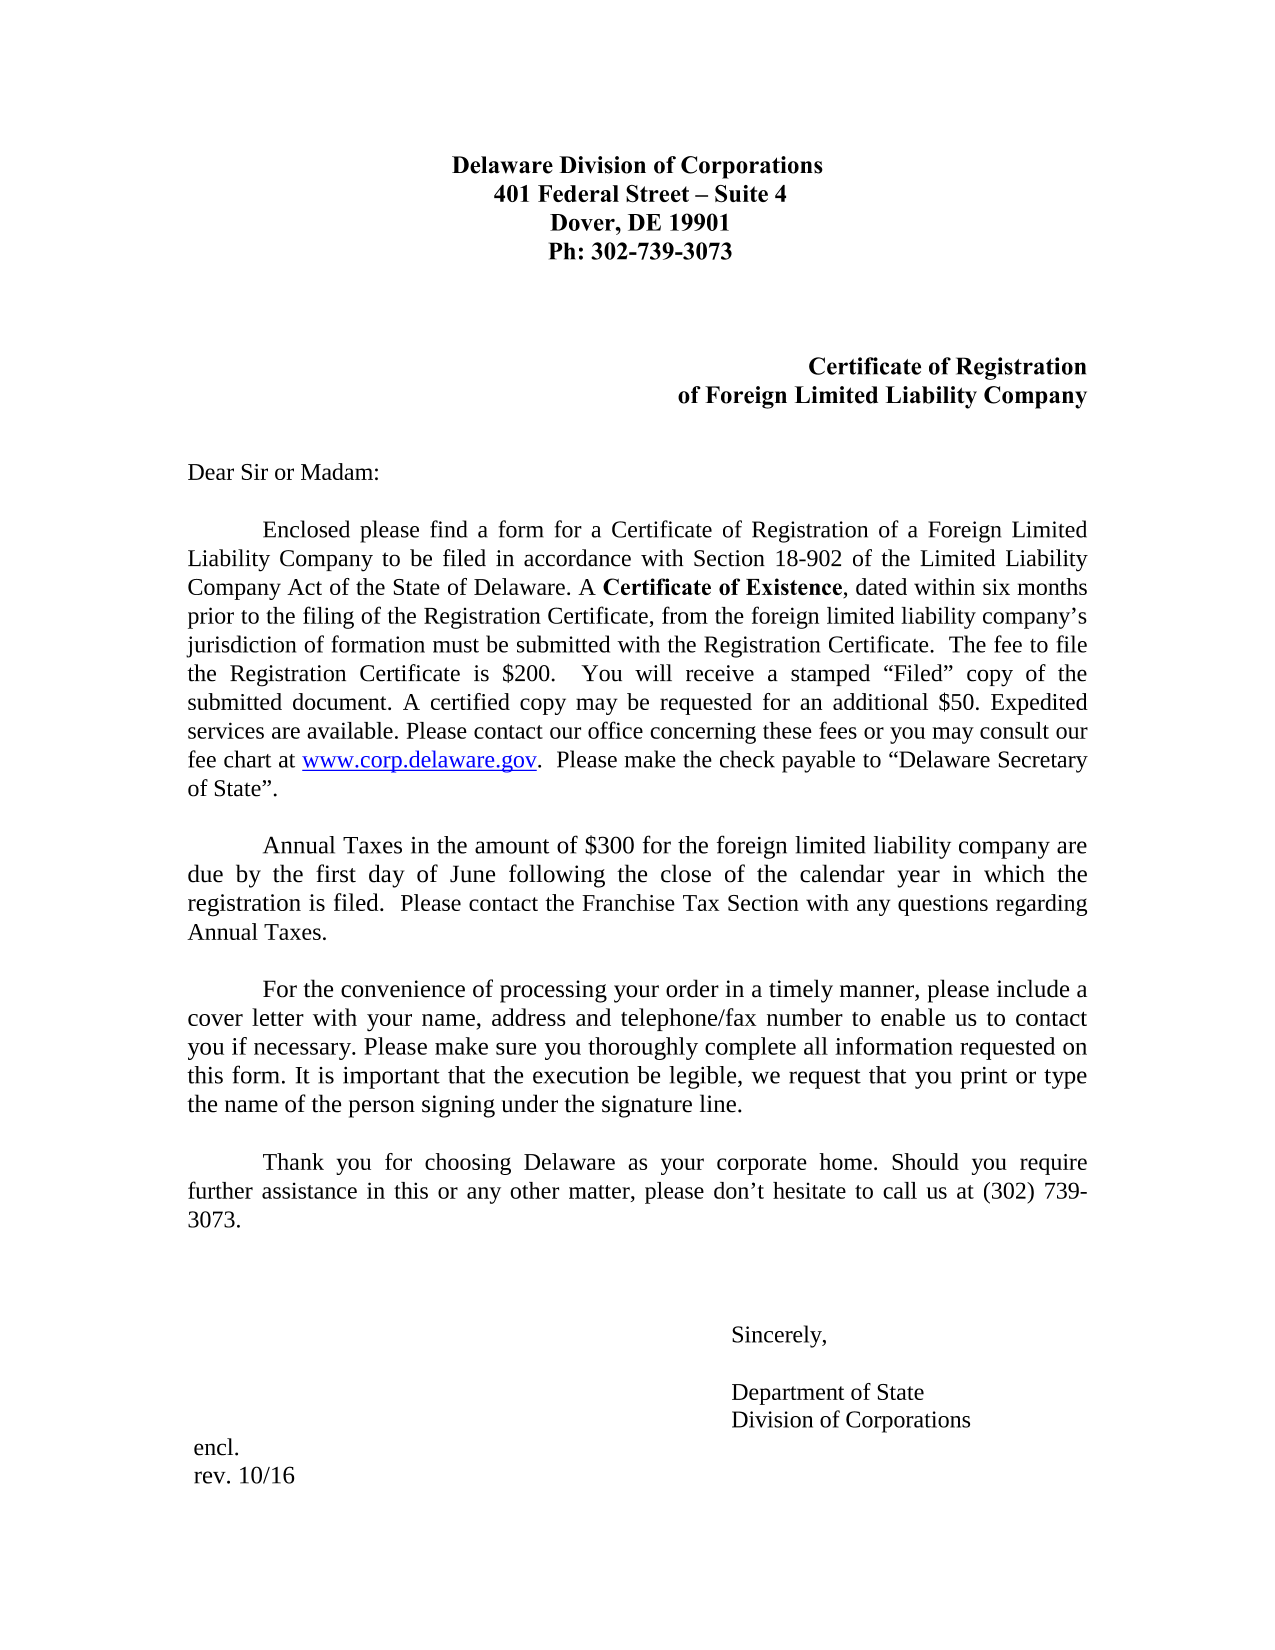 delaware-certificate-of-registration-of-a-foreign-limited-liability-company